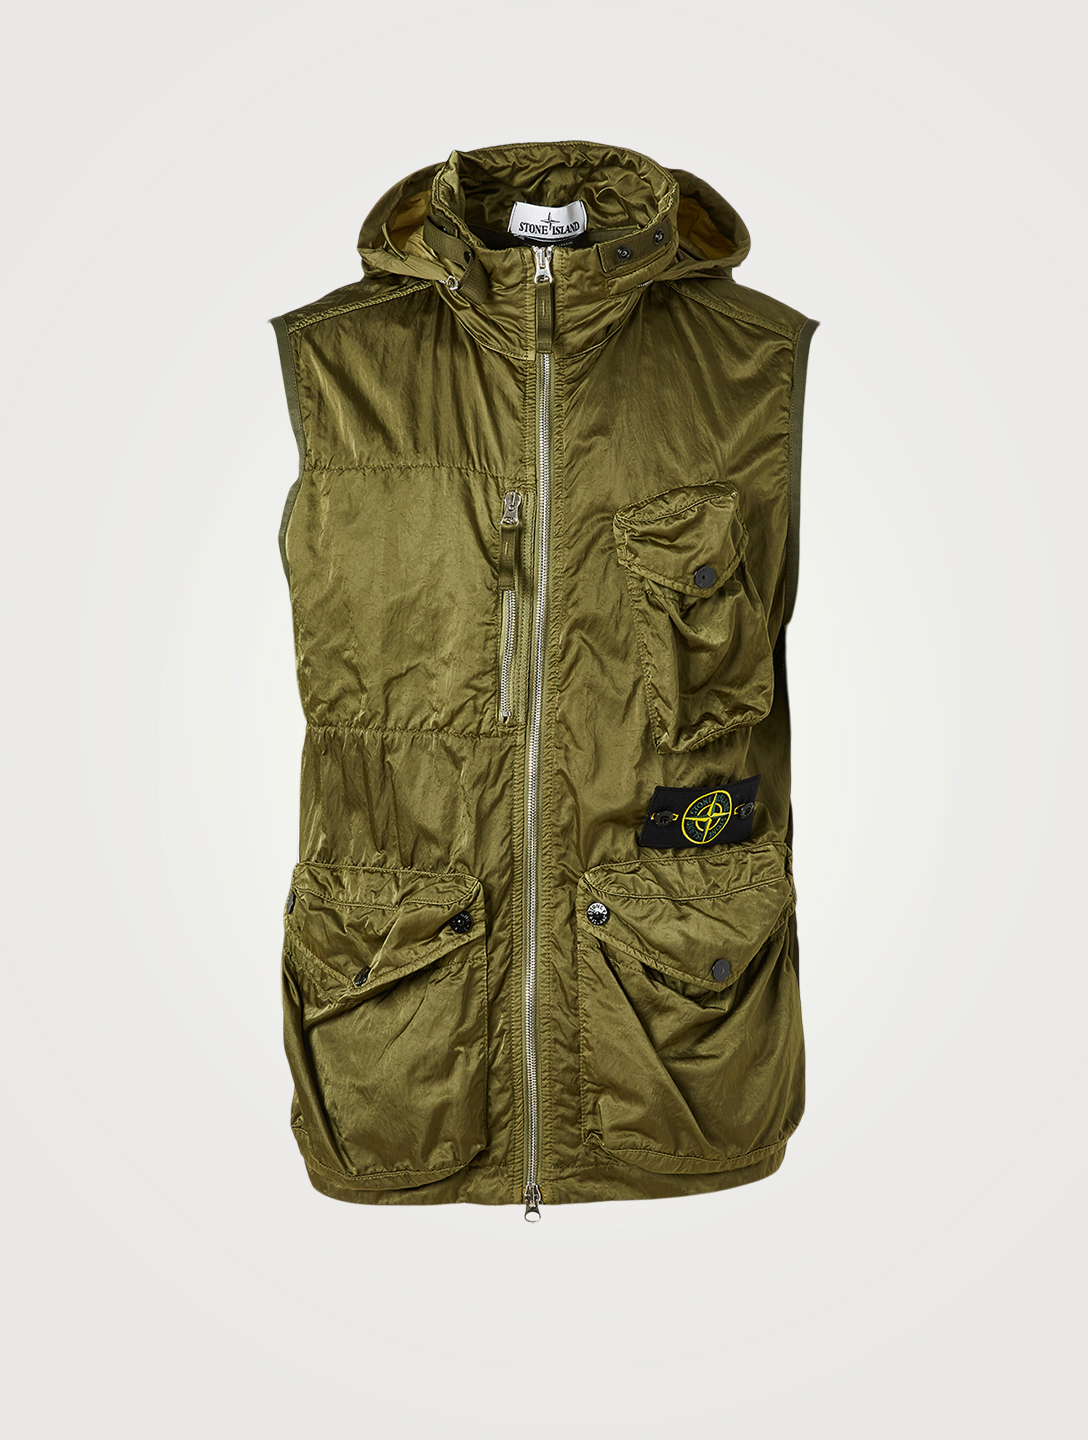 STONE ISLAND Nylon Raso-TC Zip Vest Men's Green